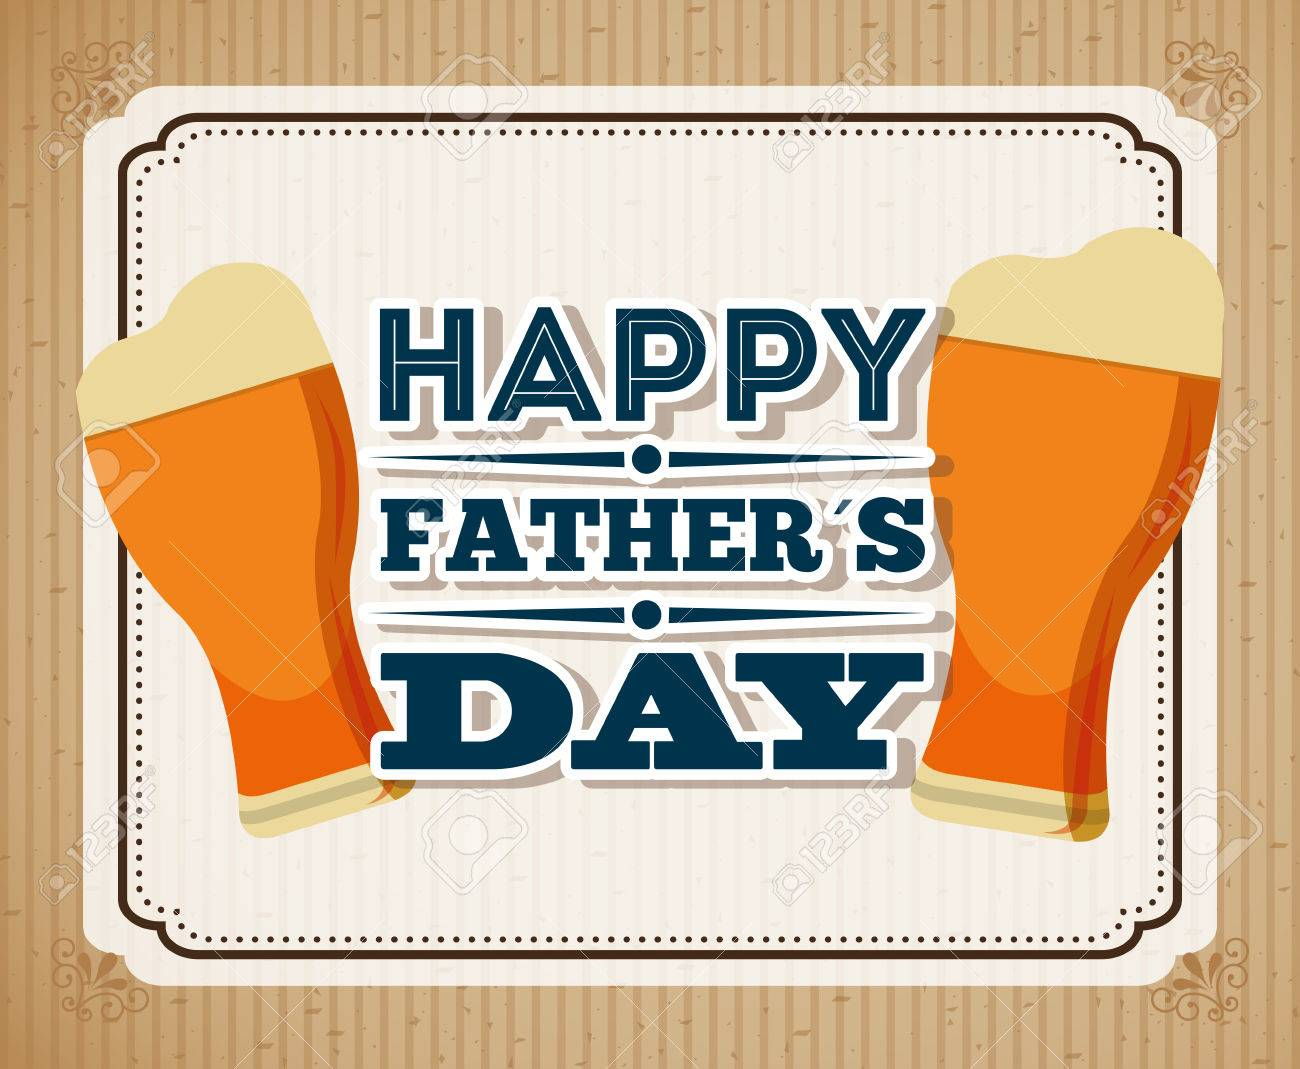 Happy Fathers Day Design Vector Illustration Eps10 Graphic Royalty